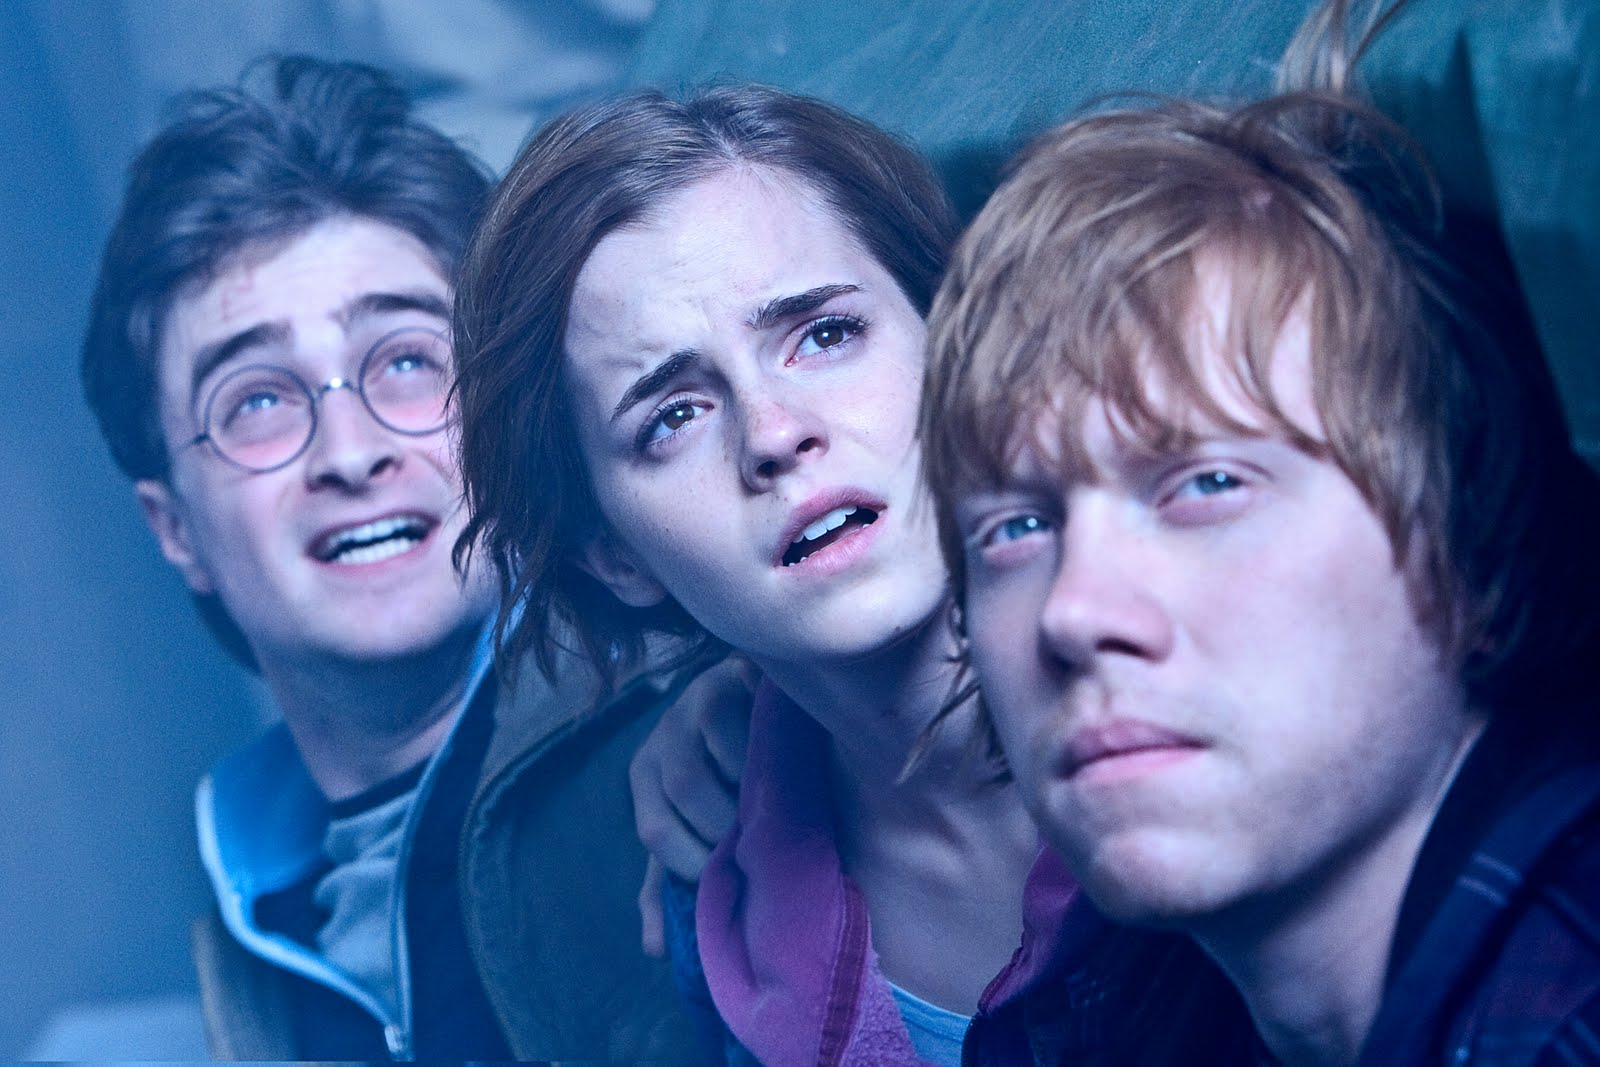 http://4.bp.blogspot.com/-XdD_SYomhoA/Th8AGhC8Q2I/AAAAAAAAASA/gEqmv6miMzQ/s1600/daniel-radcliffe-rupert-grint-emma-watson-harry-potter-and-the-deathly-hallows-part-2-image-2.jpg